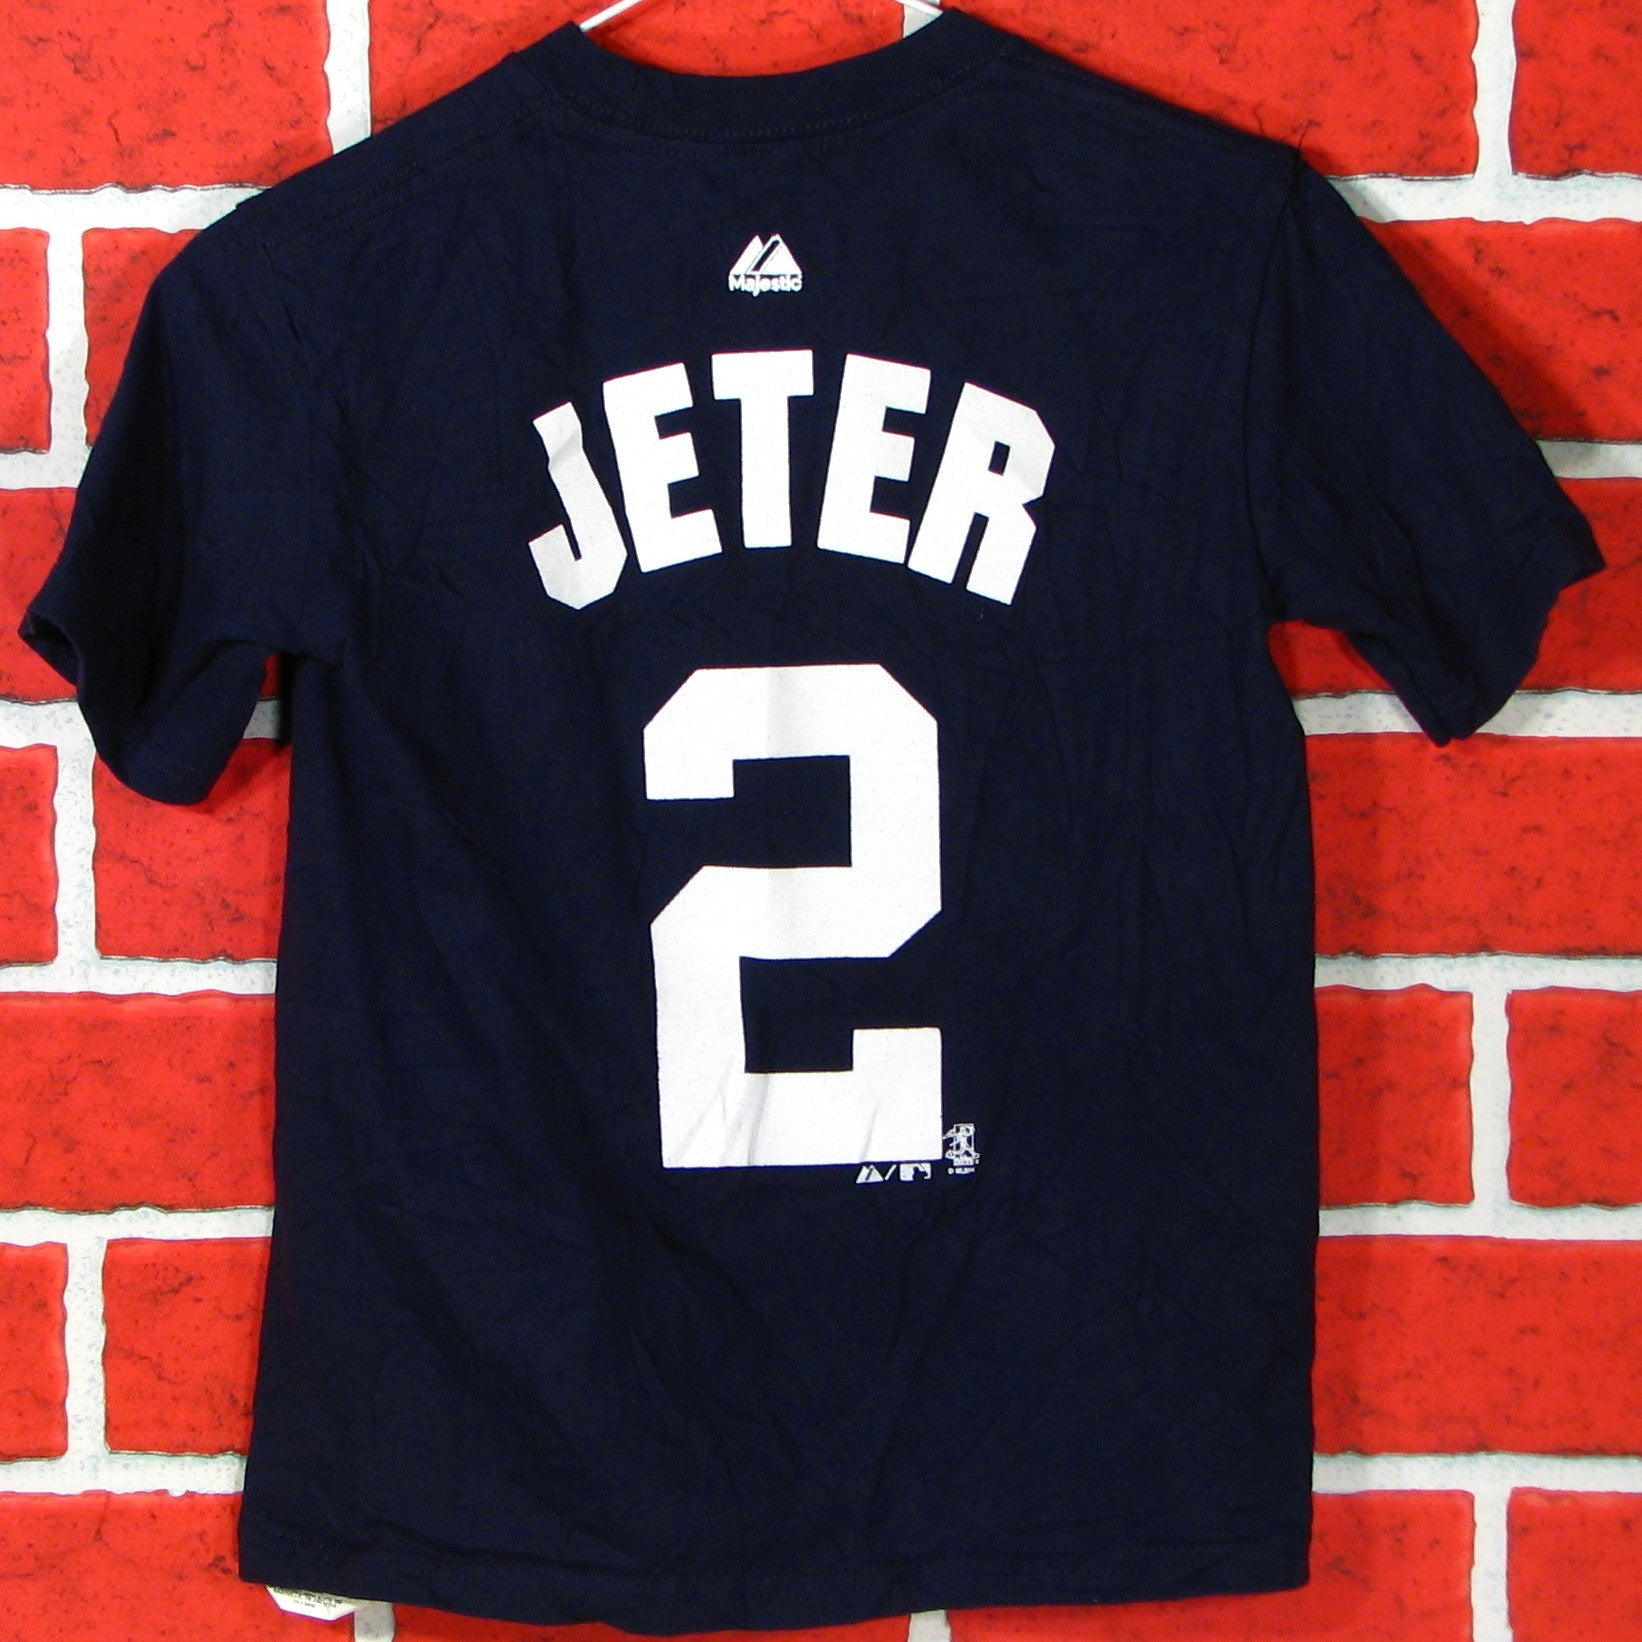 quality design 736a9 bf661 New York Yankees Jeter # 2 T-Shirt Youth